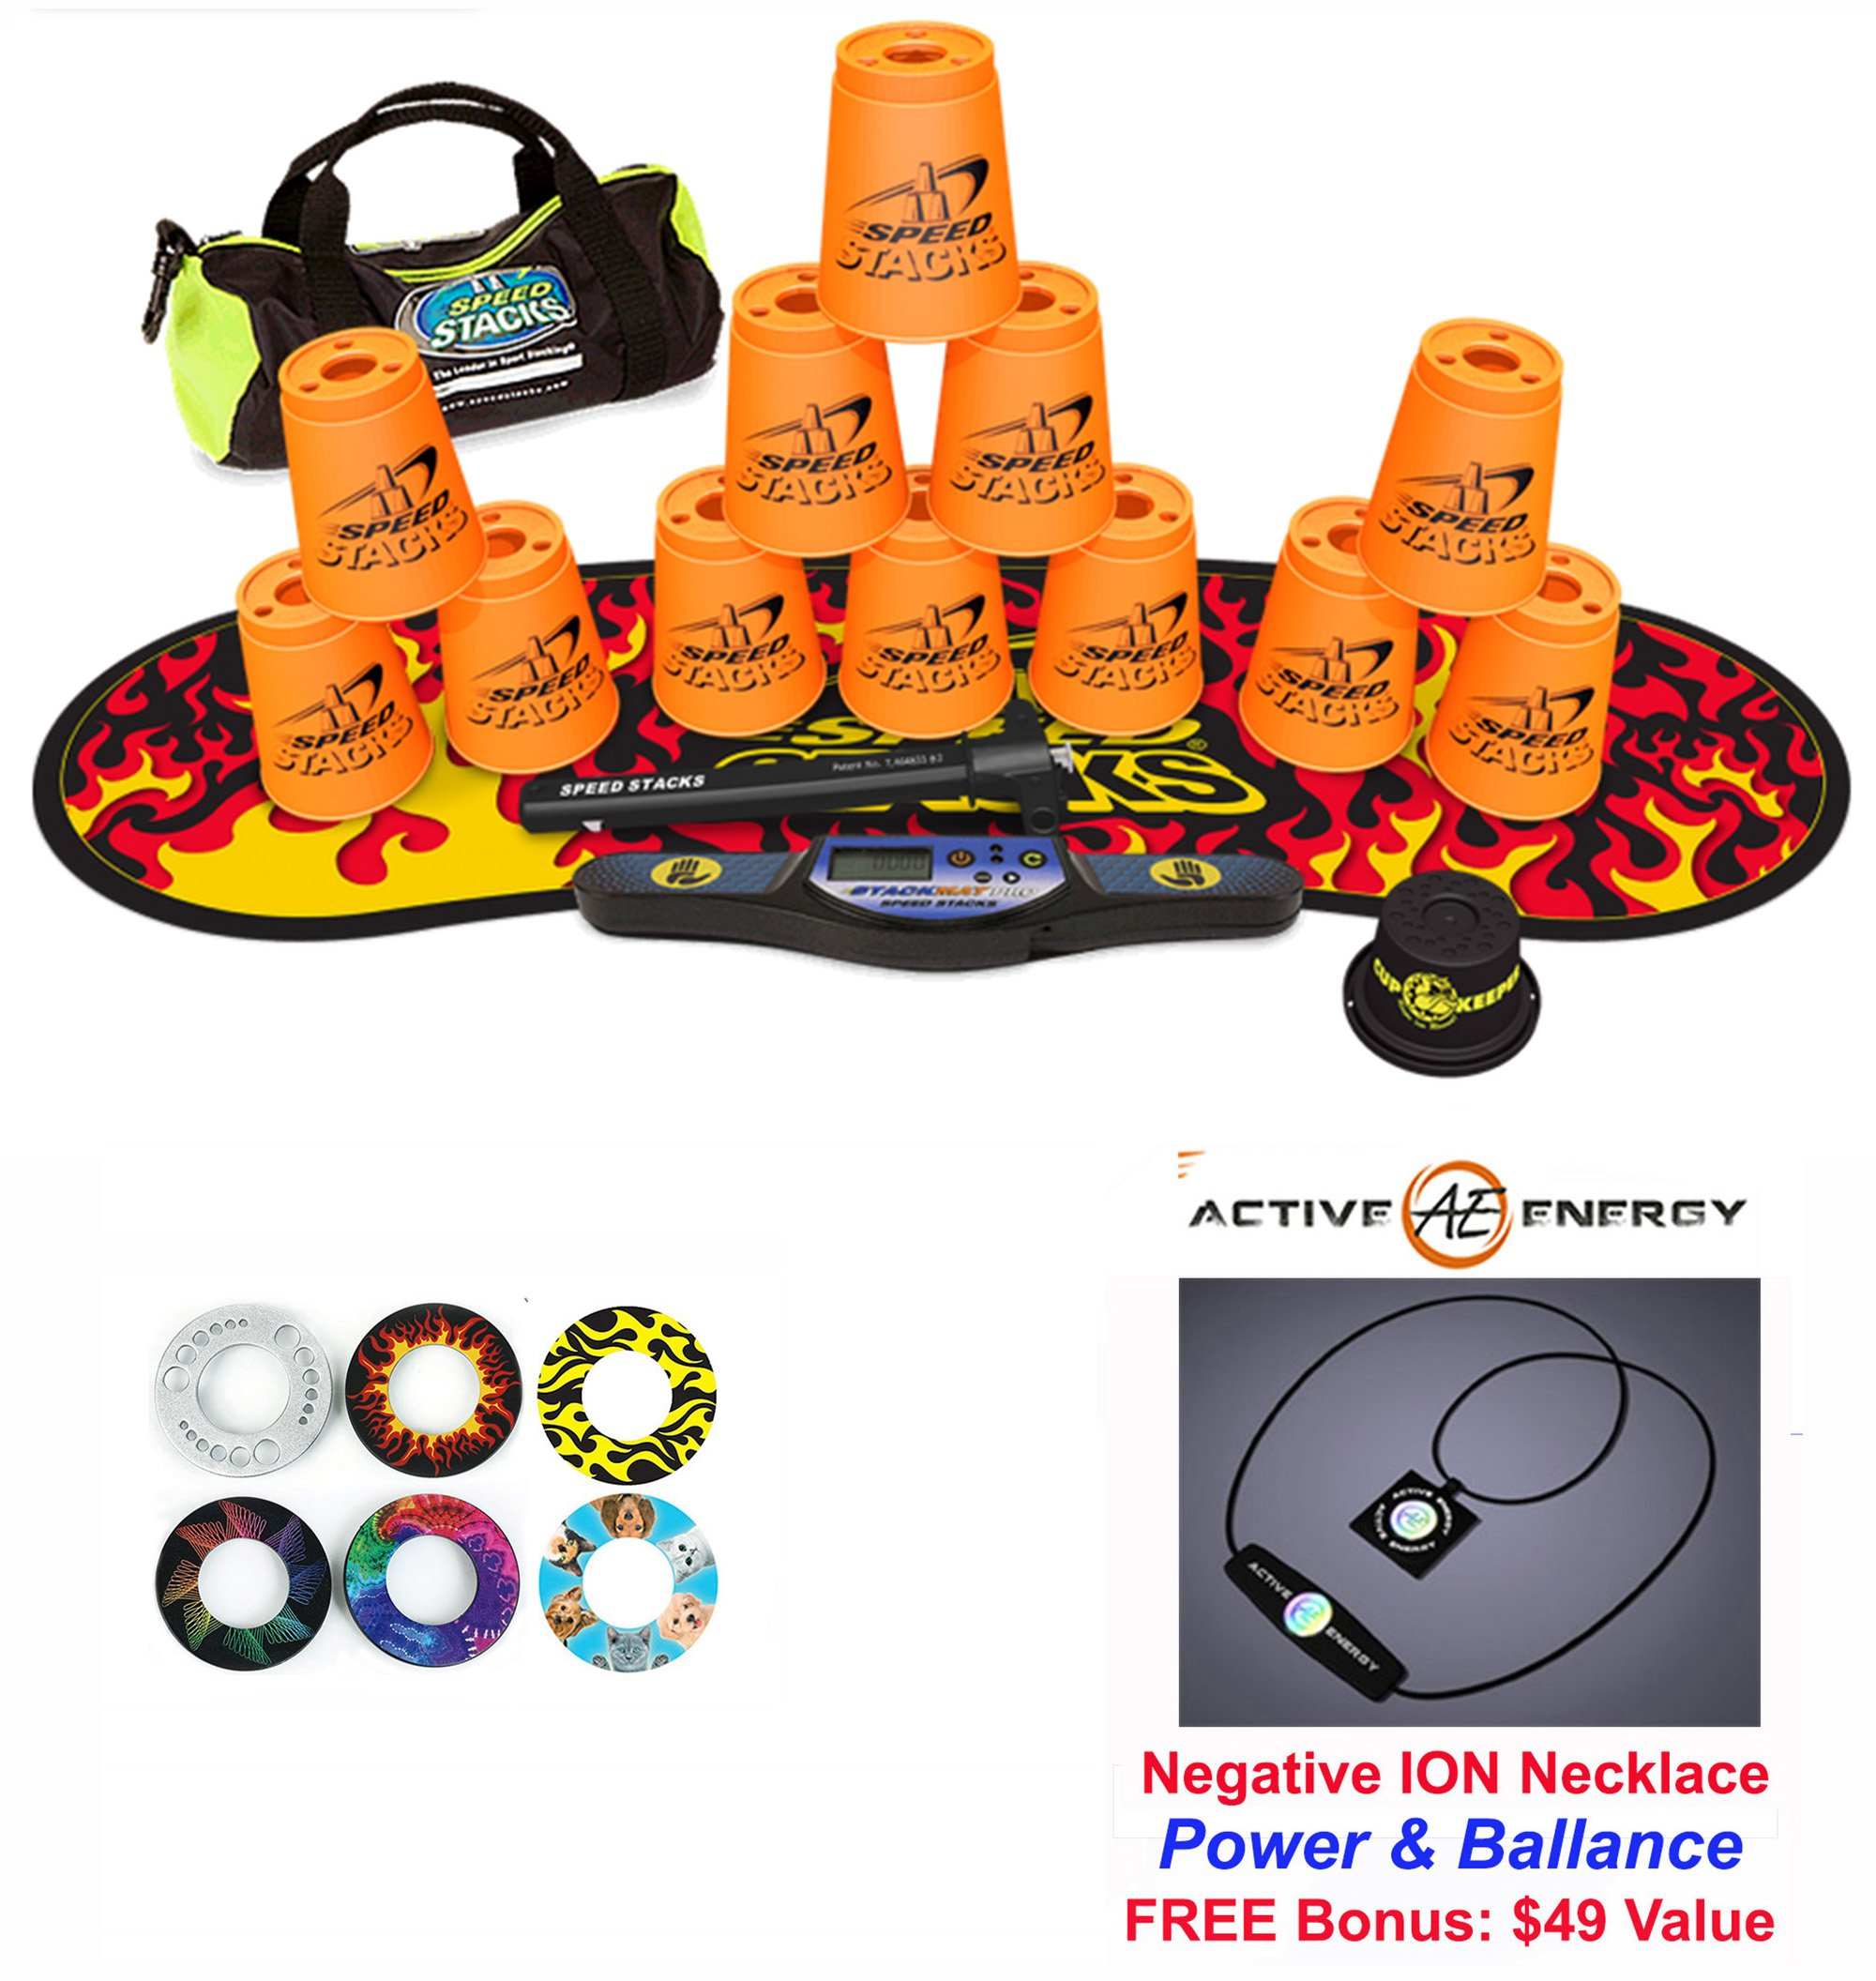 Speed Stacks Custom Combo Set - The Works: 12 ORANGE 4'' Cups, Cup Keeper, Quick Release Stem, Pro Timer, Gen 3 Premium Black Flame Mat, 6 Snap Tops, Gear Bag + FREE: Active Energy Power Necklace $49